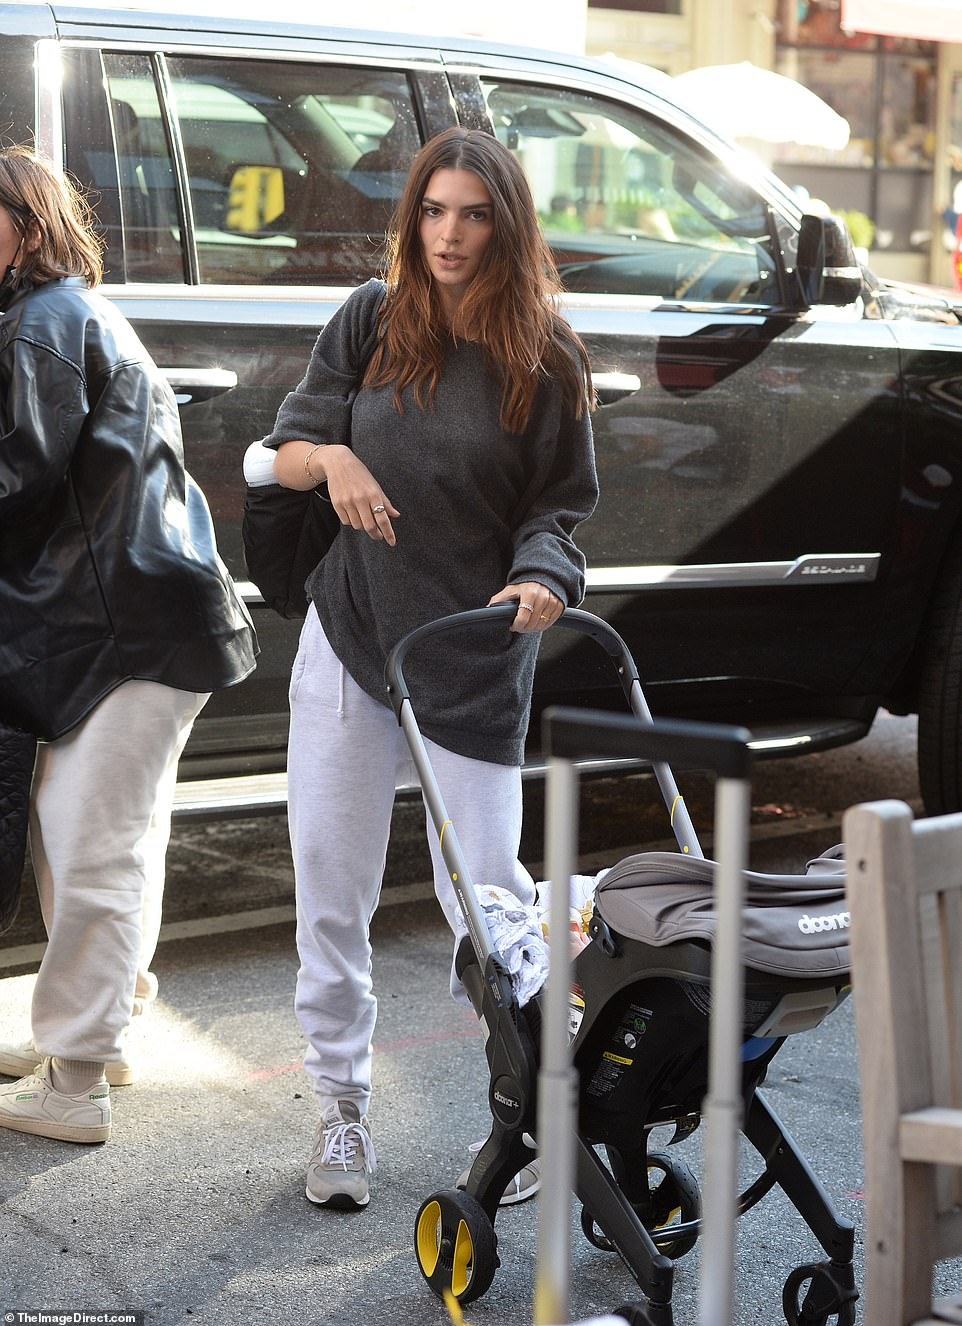 Emily Ratajkowski has been spotted returning to her home in New York City after accusing Robin Thicke of groping her bare breasts during the making of the music video for his infamous 2013 hit Blurred Lines